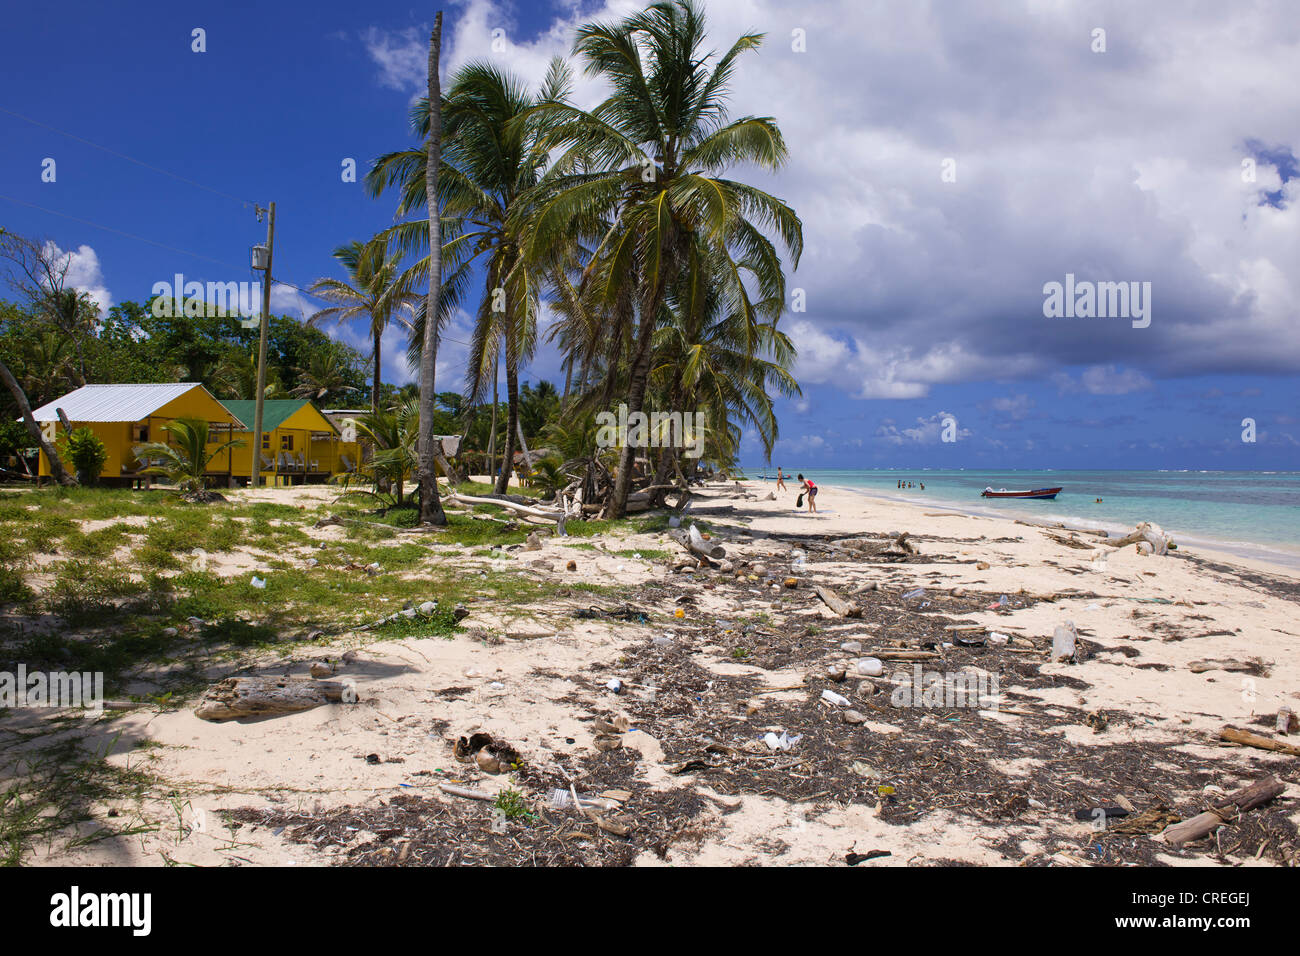 Polluted beach with tourist cabins, Little Corn Island, Caribbean Sea, Nicaragua, Central America, America - Stock Image